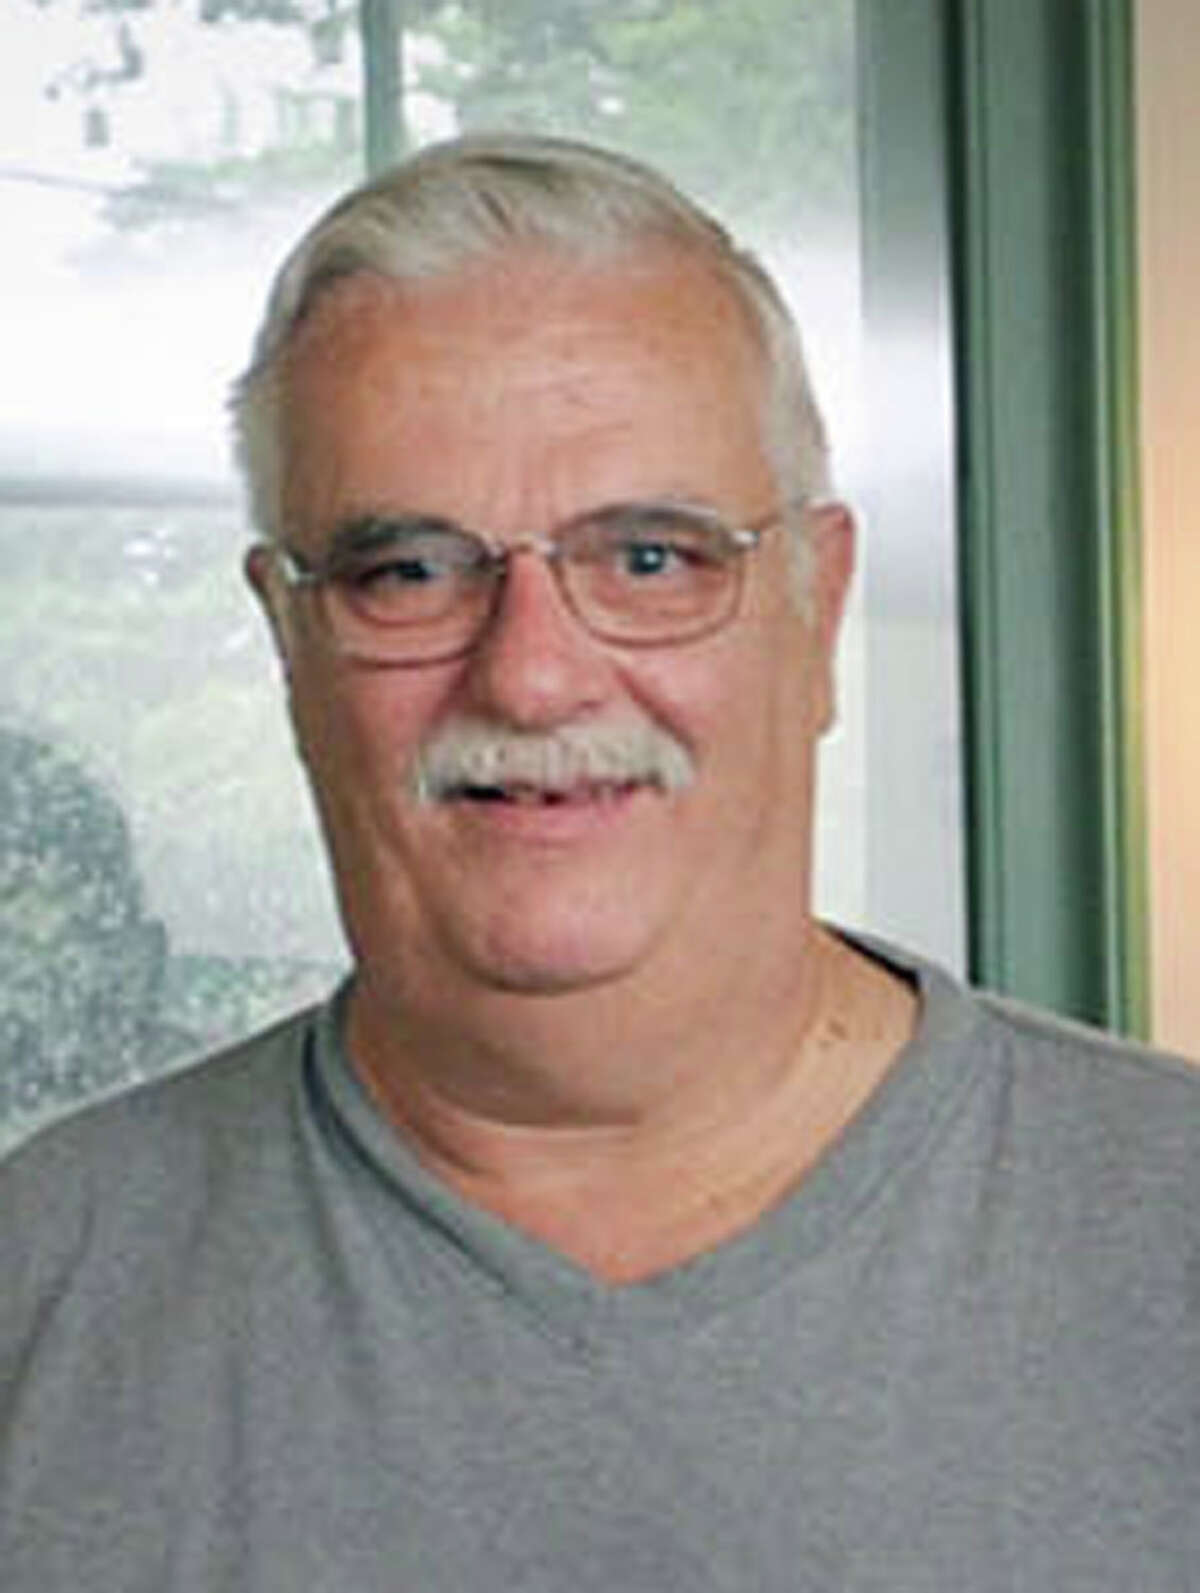 Robert Young, of Danbury, Conn., has been named to the Connecticut Veterans Hall of Fame.